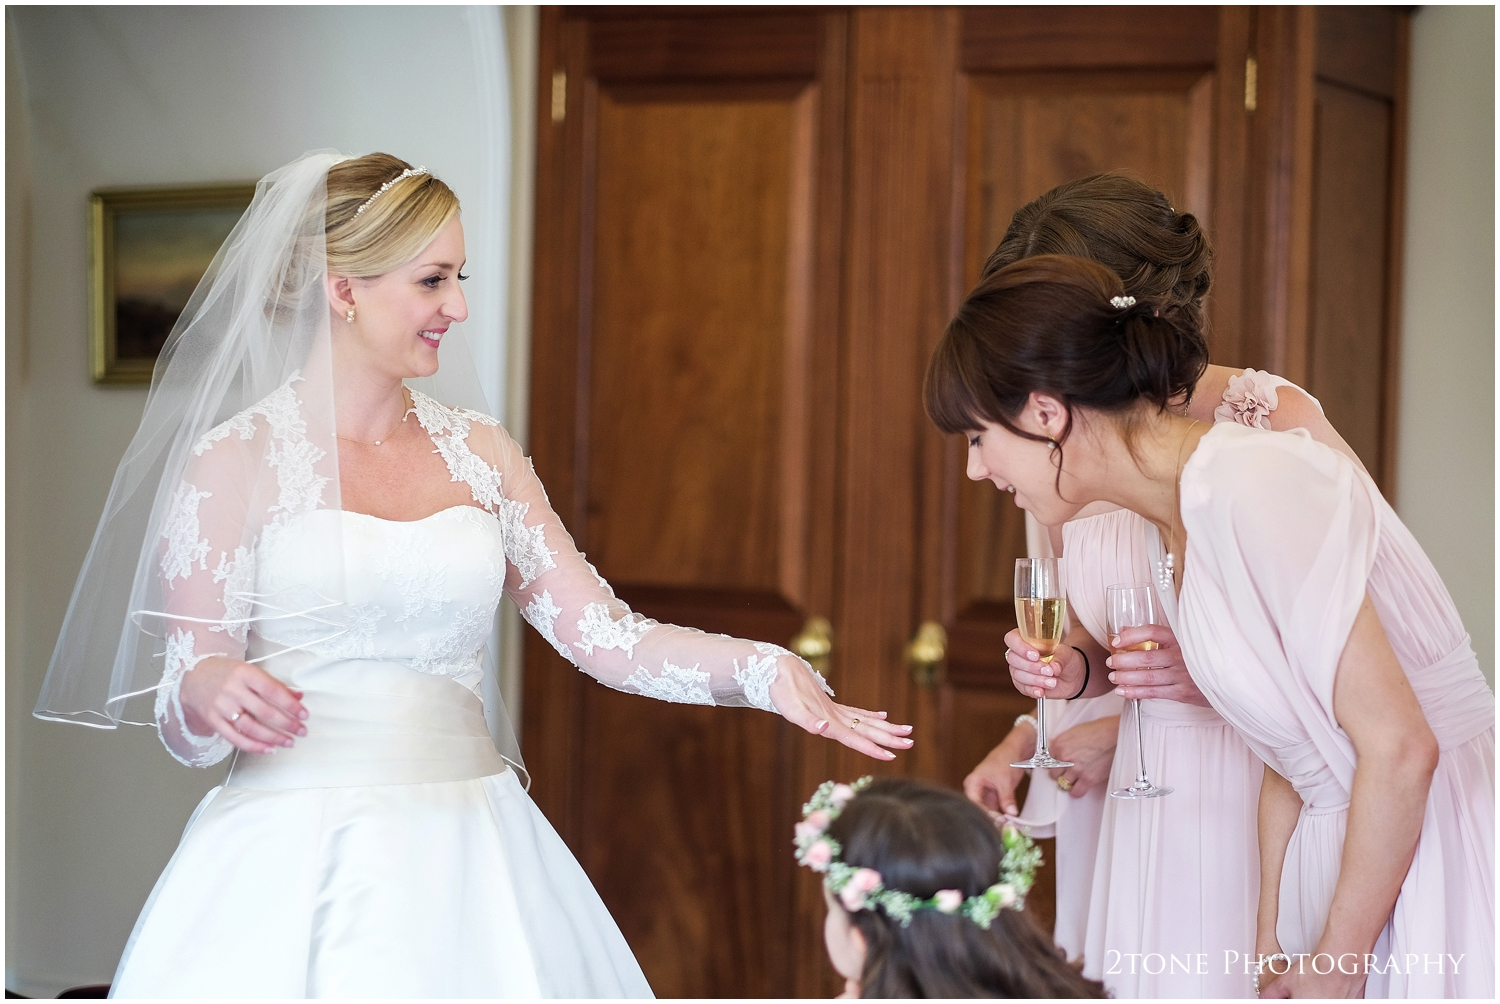 Kristen shows her bridesmaids her new ring, a gift from her parents made especially for her to match herstunning vintage necklace.